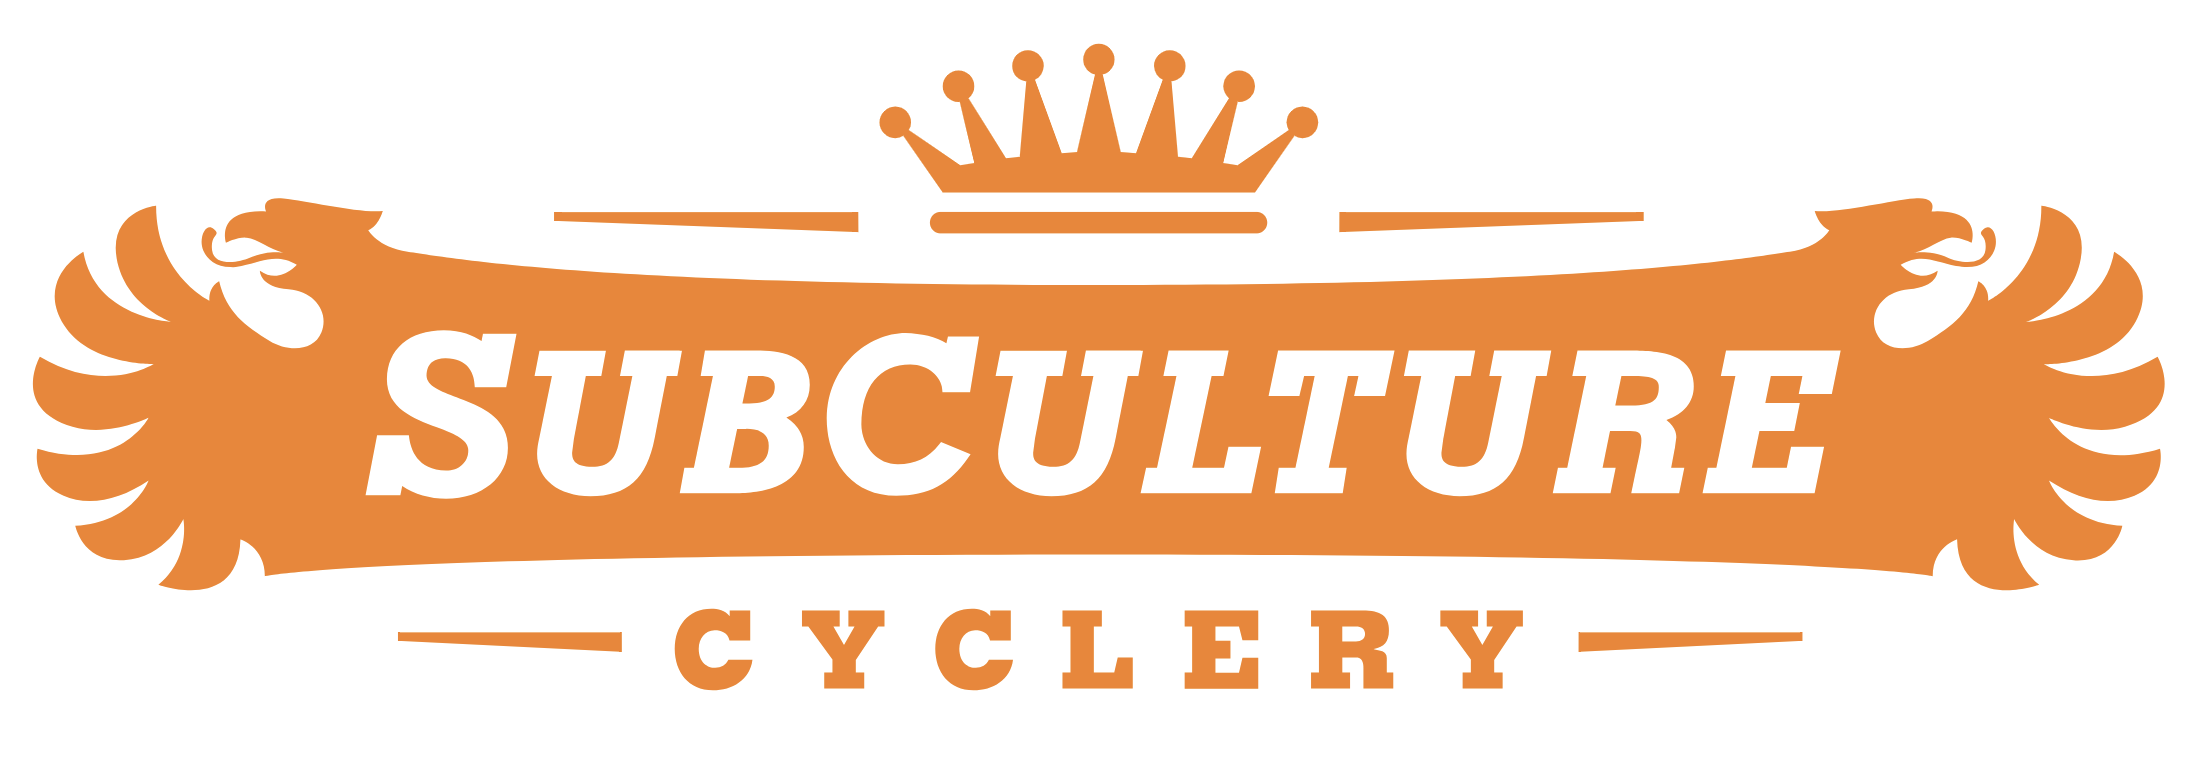 Subculture Cyclery.png